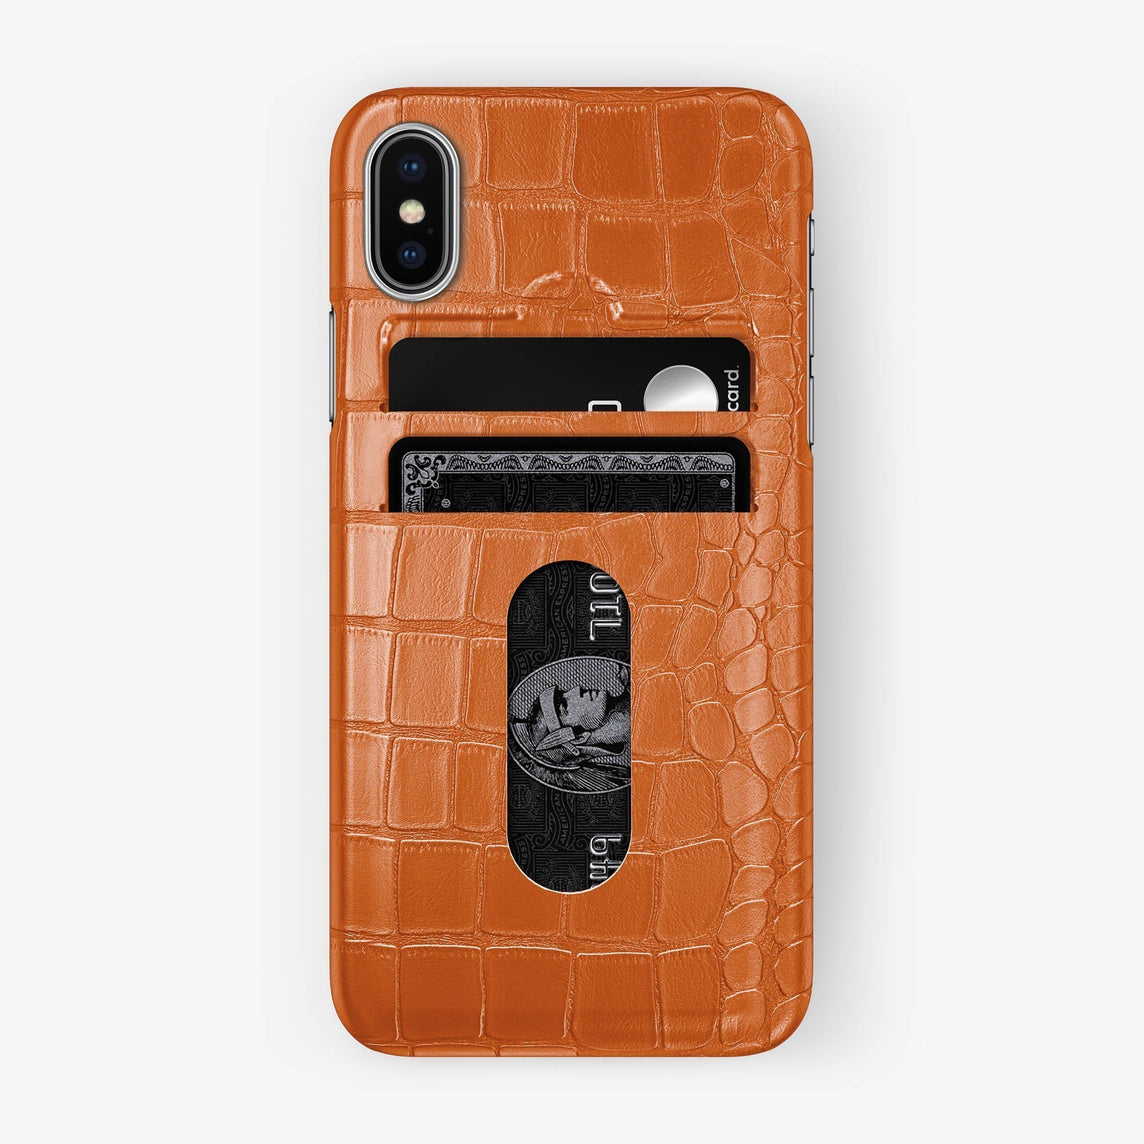 Alligator Card Holder Case iPhone Xs Max | Orange - Stainless Steel - Hadoro